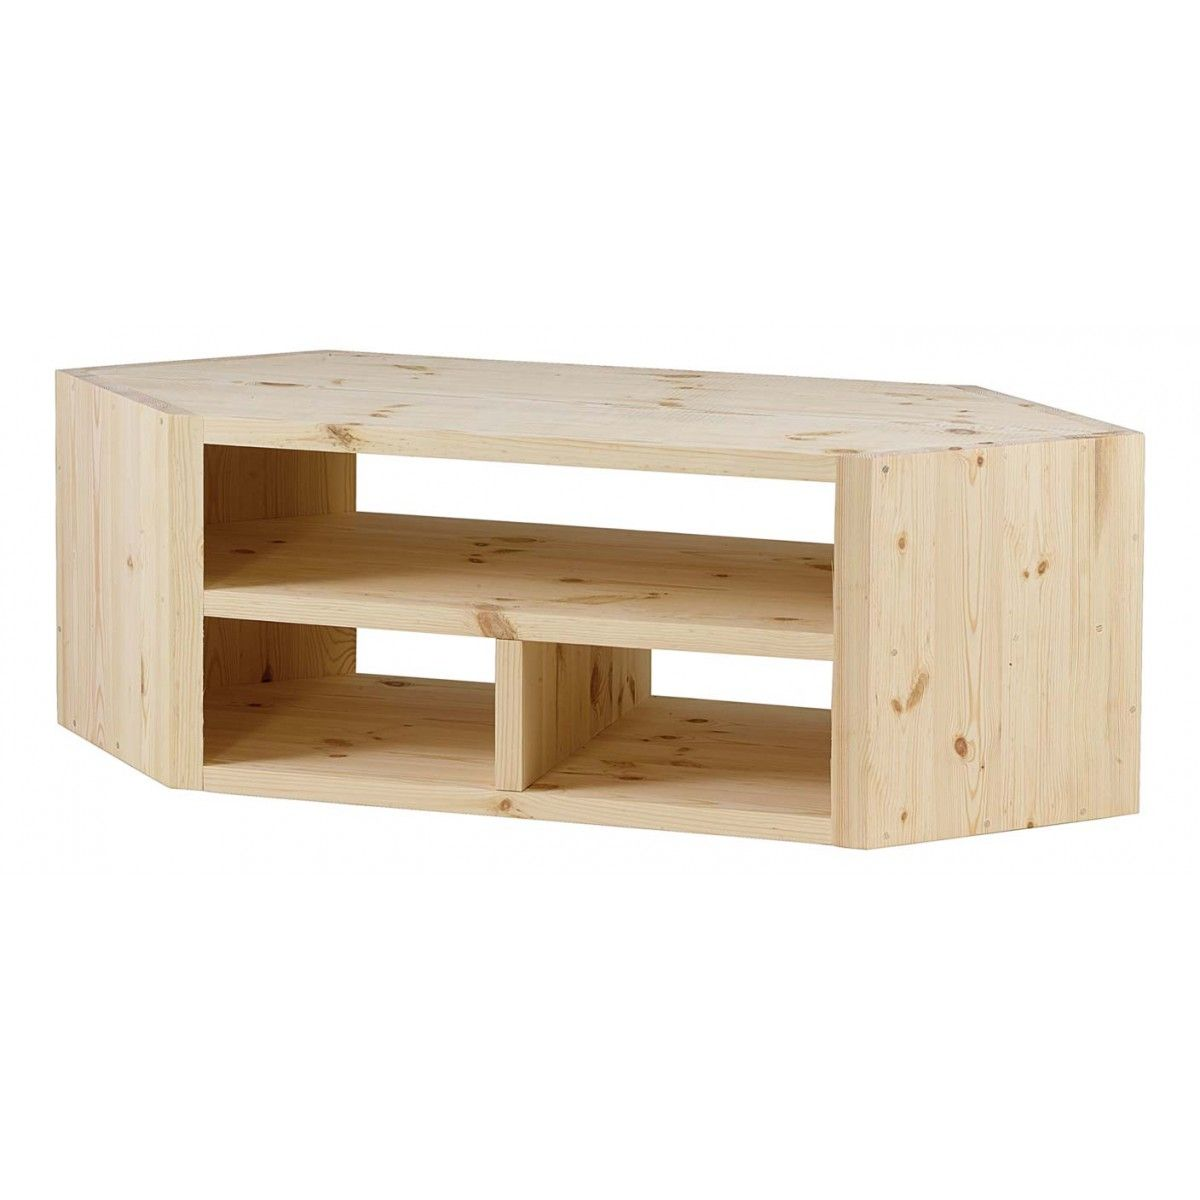 Meuble Tv D Angle Design Pin Massif Brut 3 Niches Matendance  # Meubles Tv D'Angle En Bois